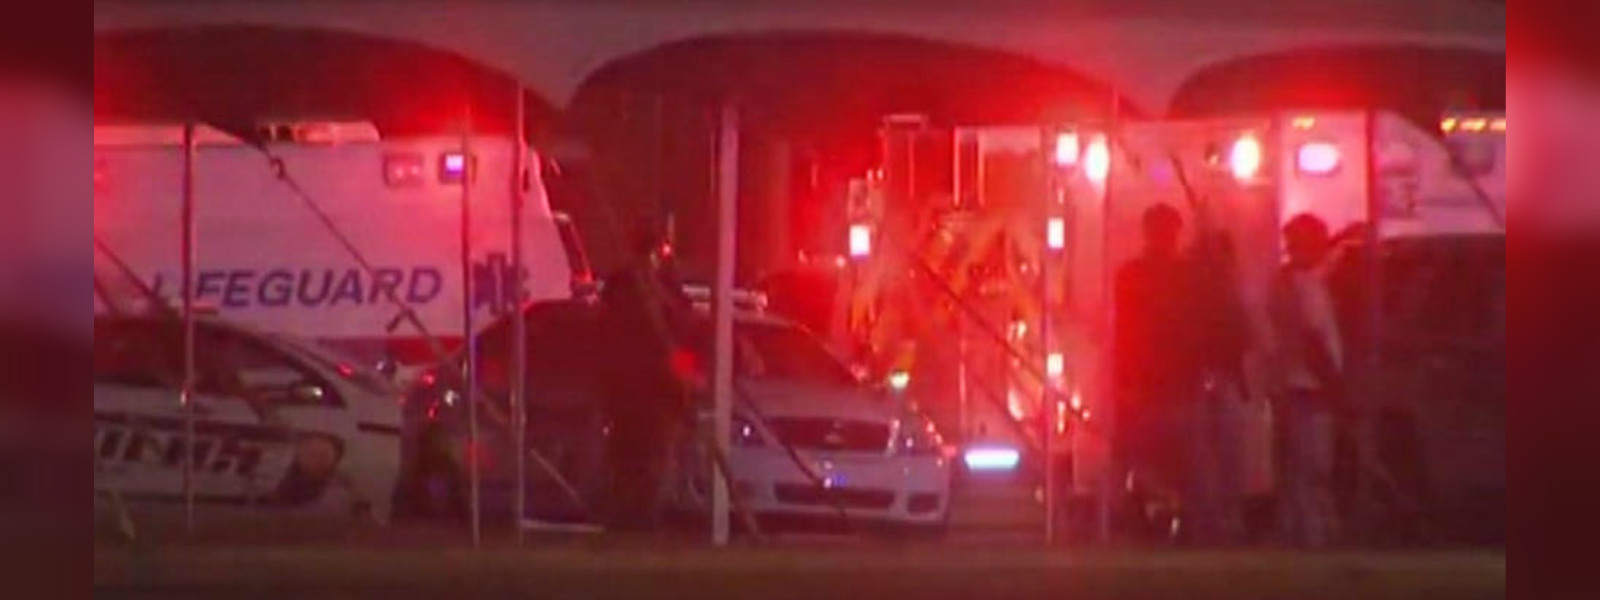 Ten teens shot after high school football game in Alabama – police